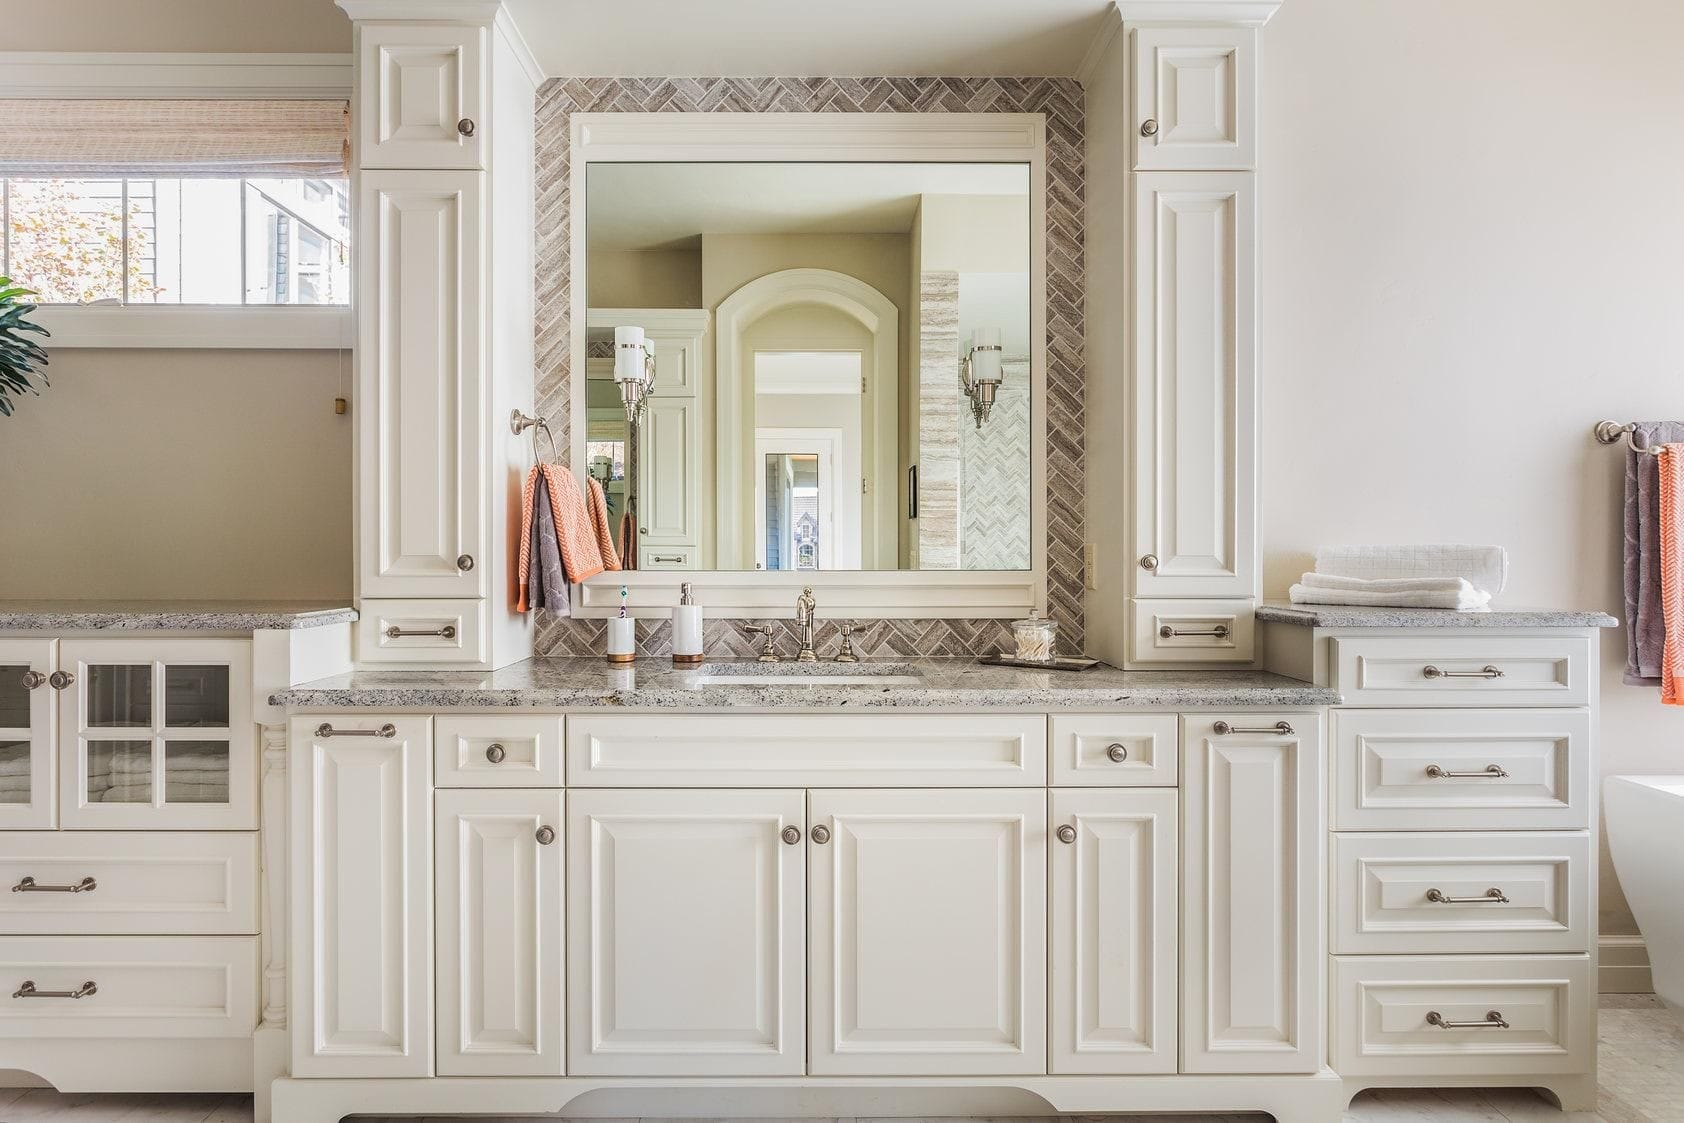 Lubbock Texas Kitchen Cabinets Lubbock Texas Kitchen Cabinets B And S Wood Working Inc